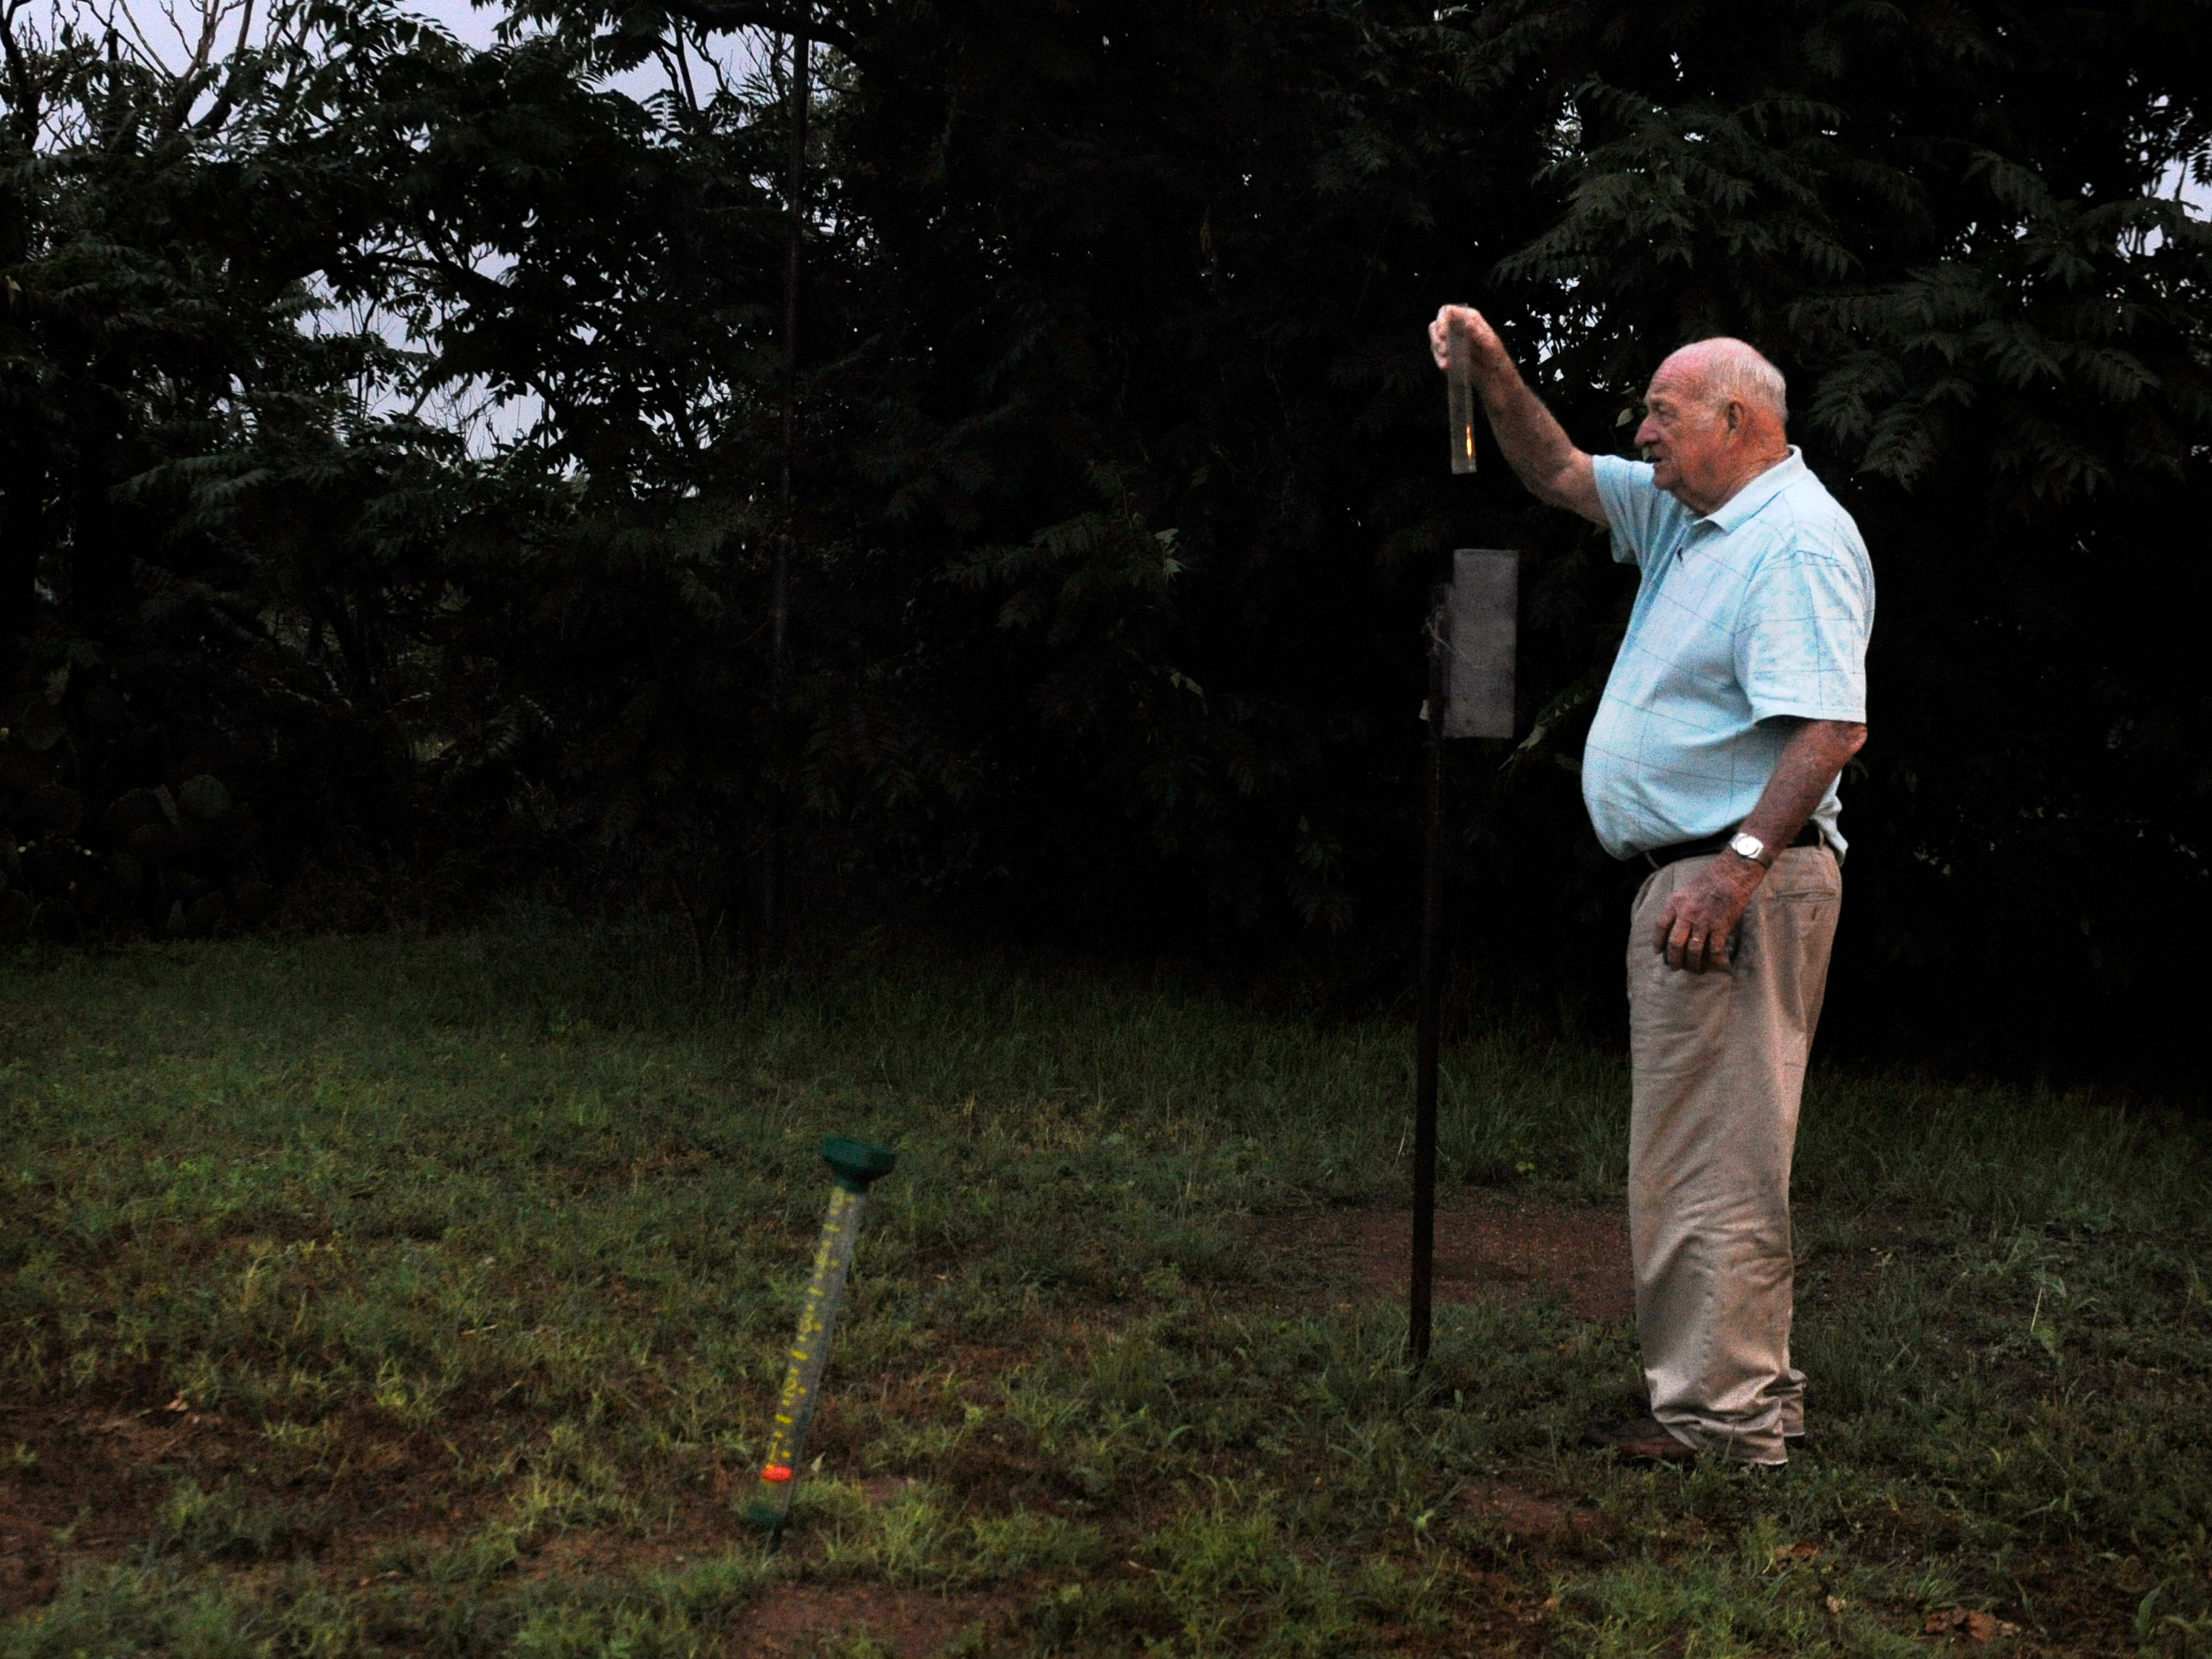 Jim Baum, the owner of KVMC/KAUM radio and the mayor of Colorado City, takes a measure of one of his rain gauges Thursday evening May 28, 2015 outside of the station. Baum has been keeping daily weather measurements at the station since 1982.